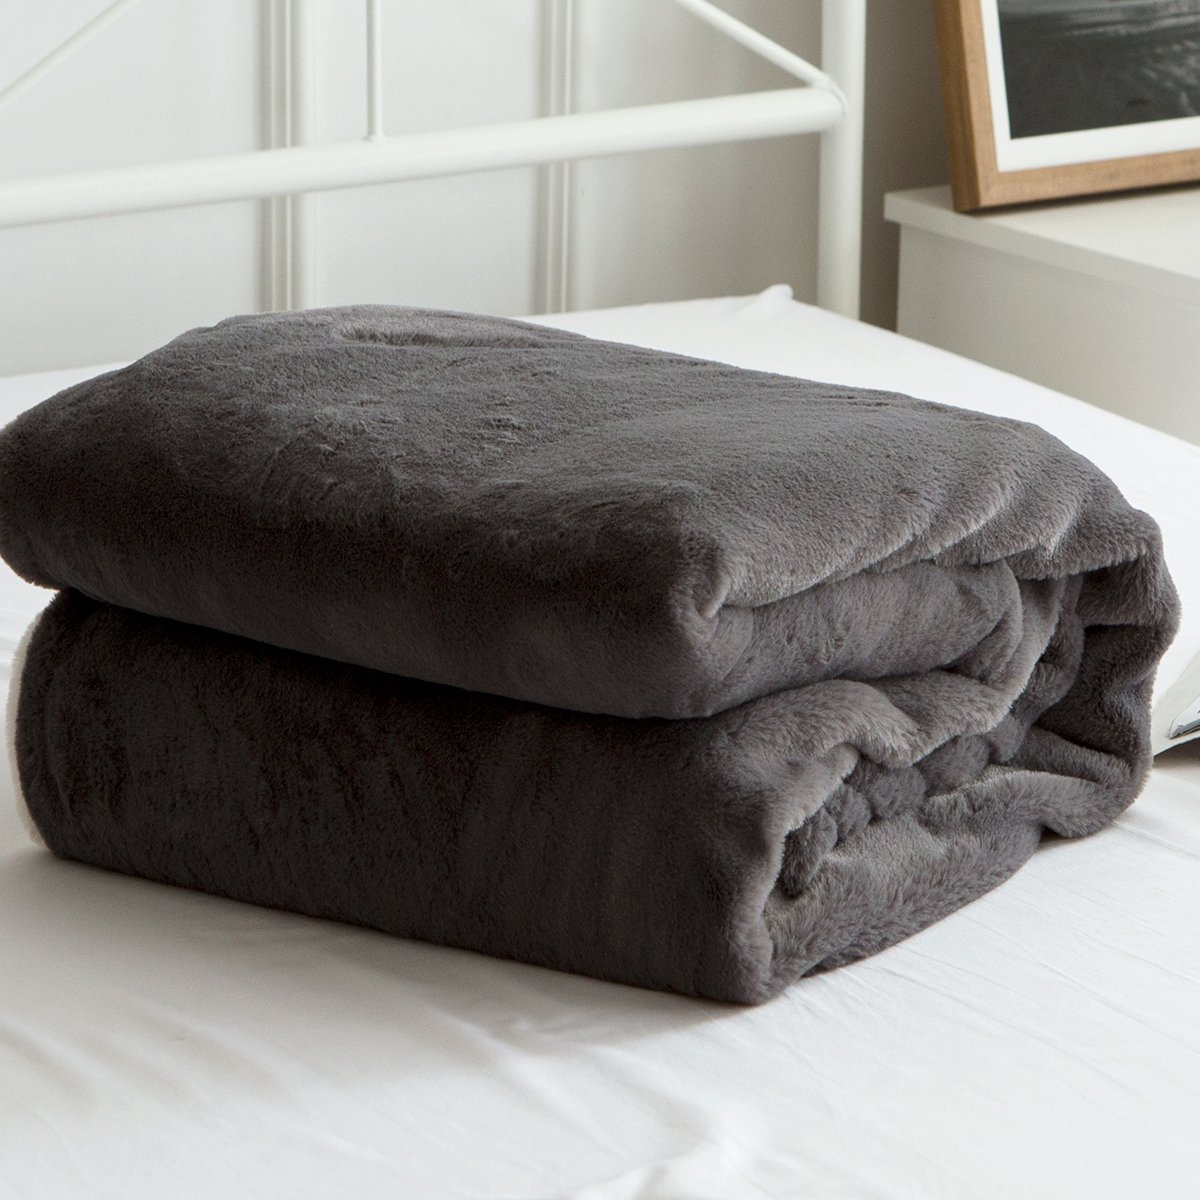 Qbedding Inc. Qbedding Fuzzy Soft Reversible Solid Color Velvet Plush Blanket Grey Twin